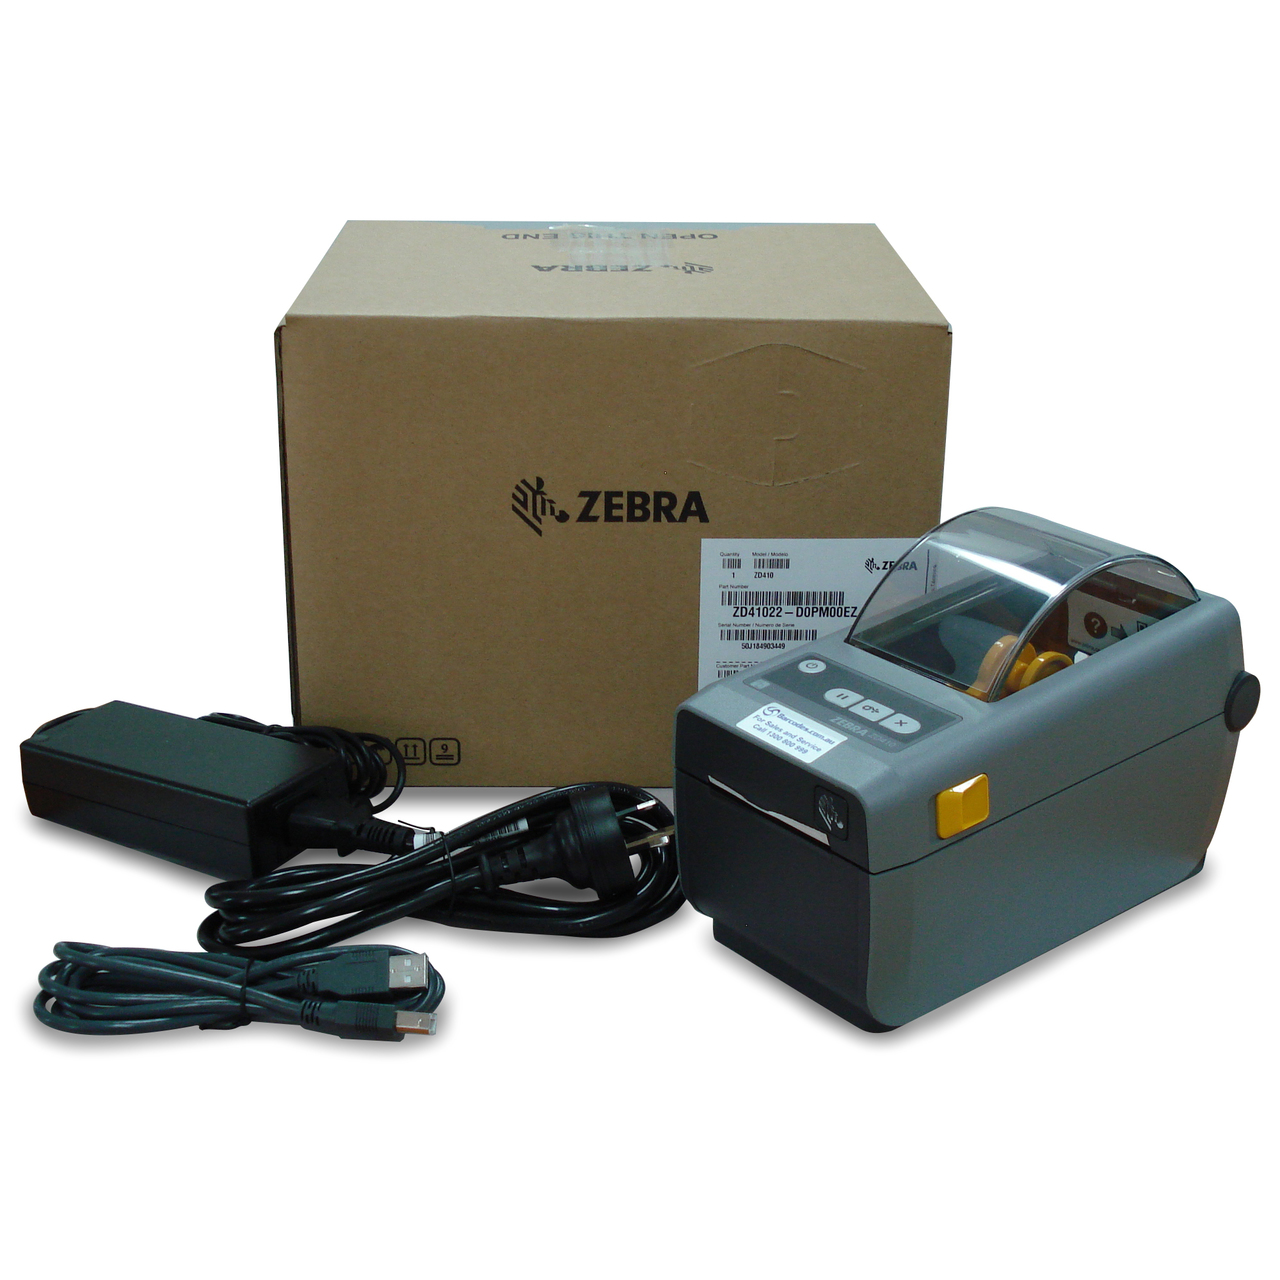 Zebra ZD410 Desktop Printer- USB-Bluetooth